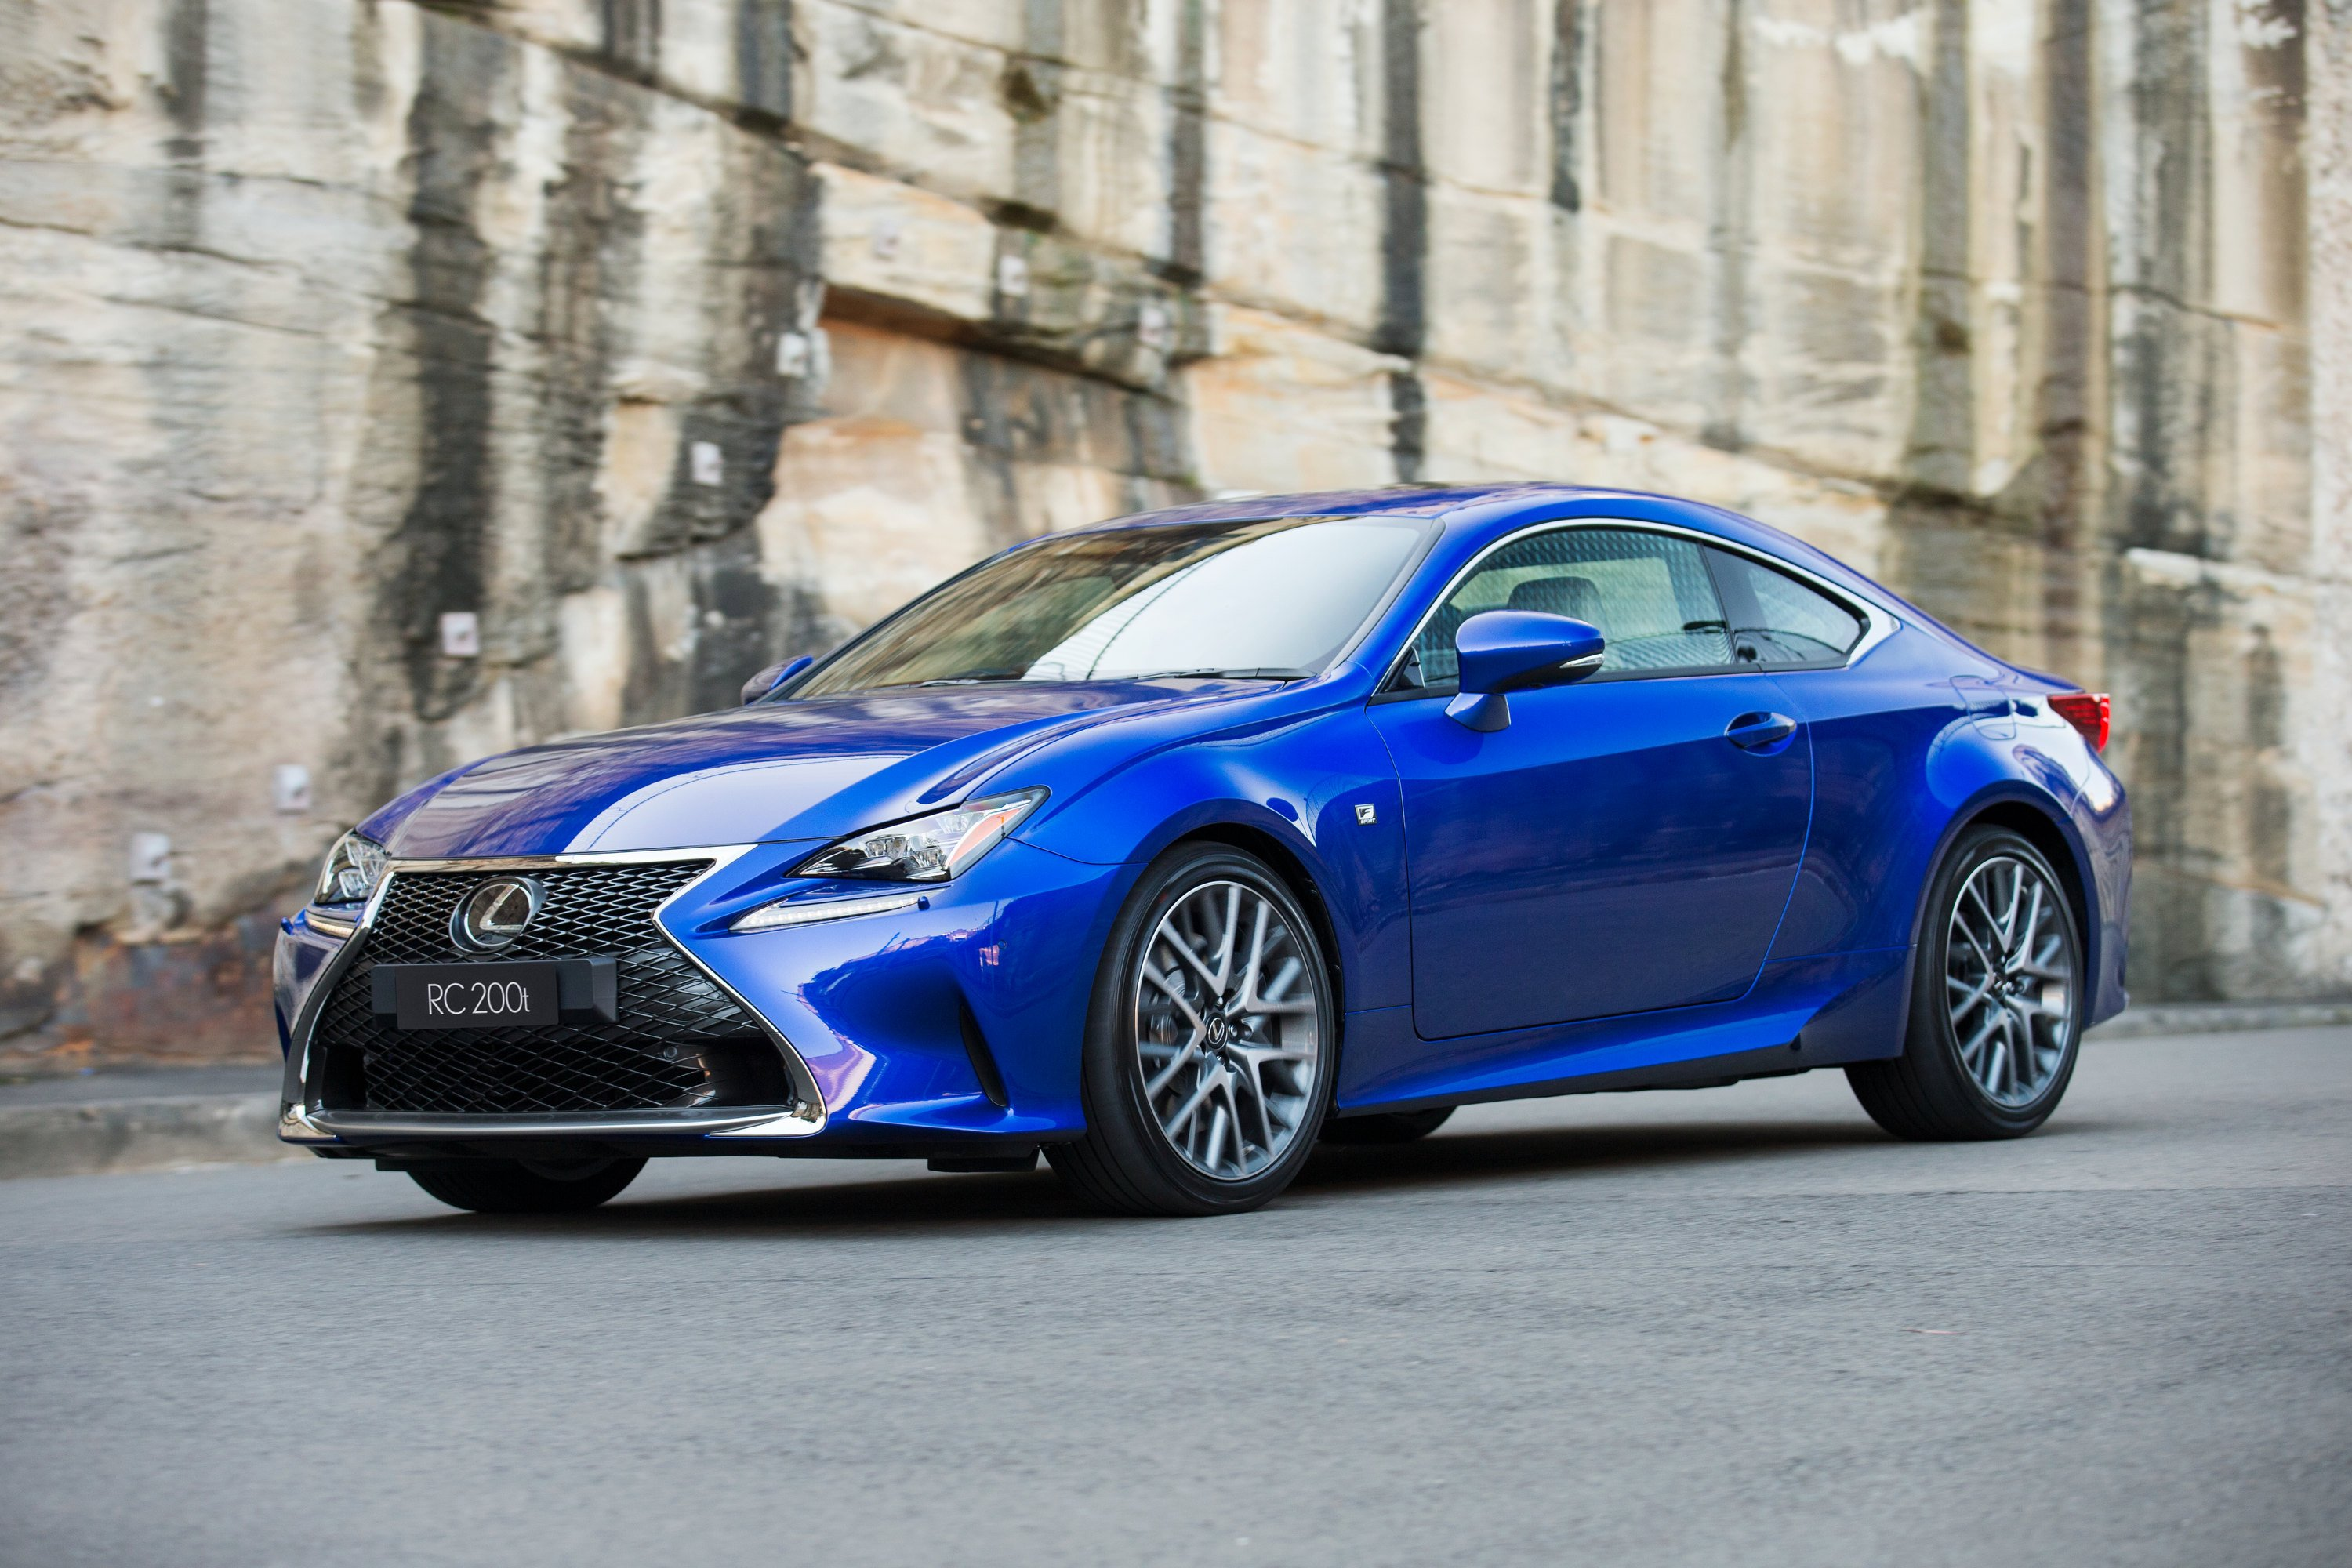 2016 Lexus Rc Coupe Pricing And Specifications Entry